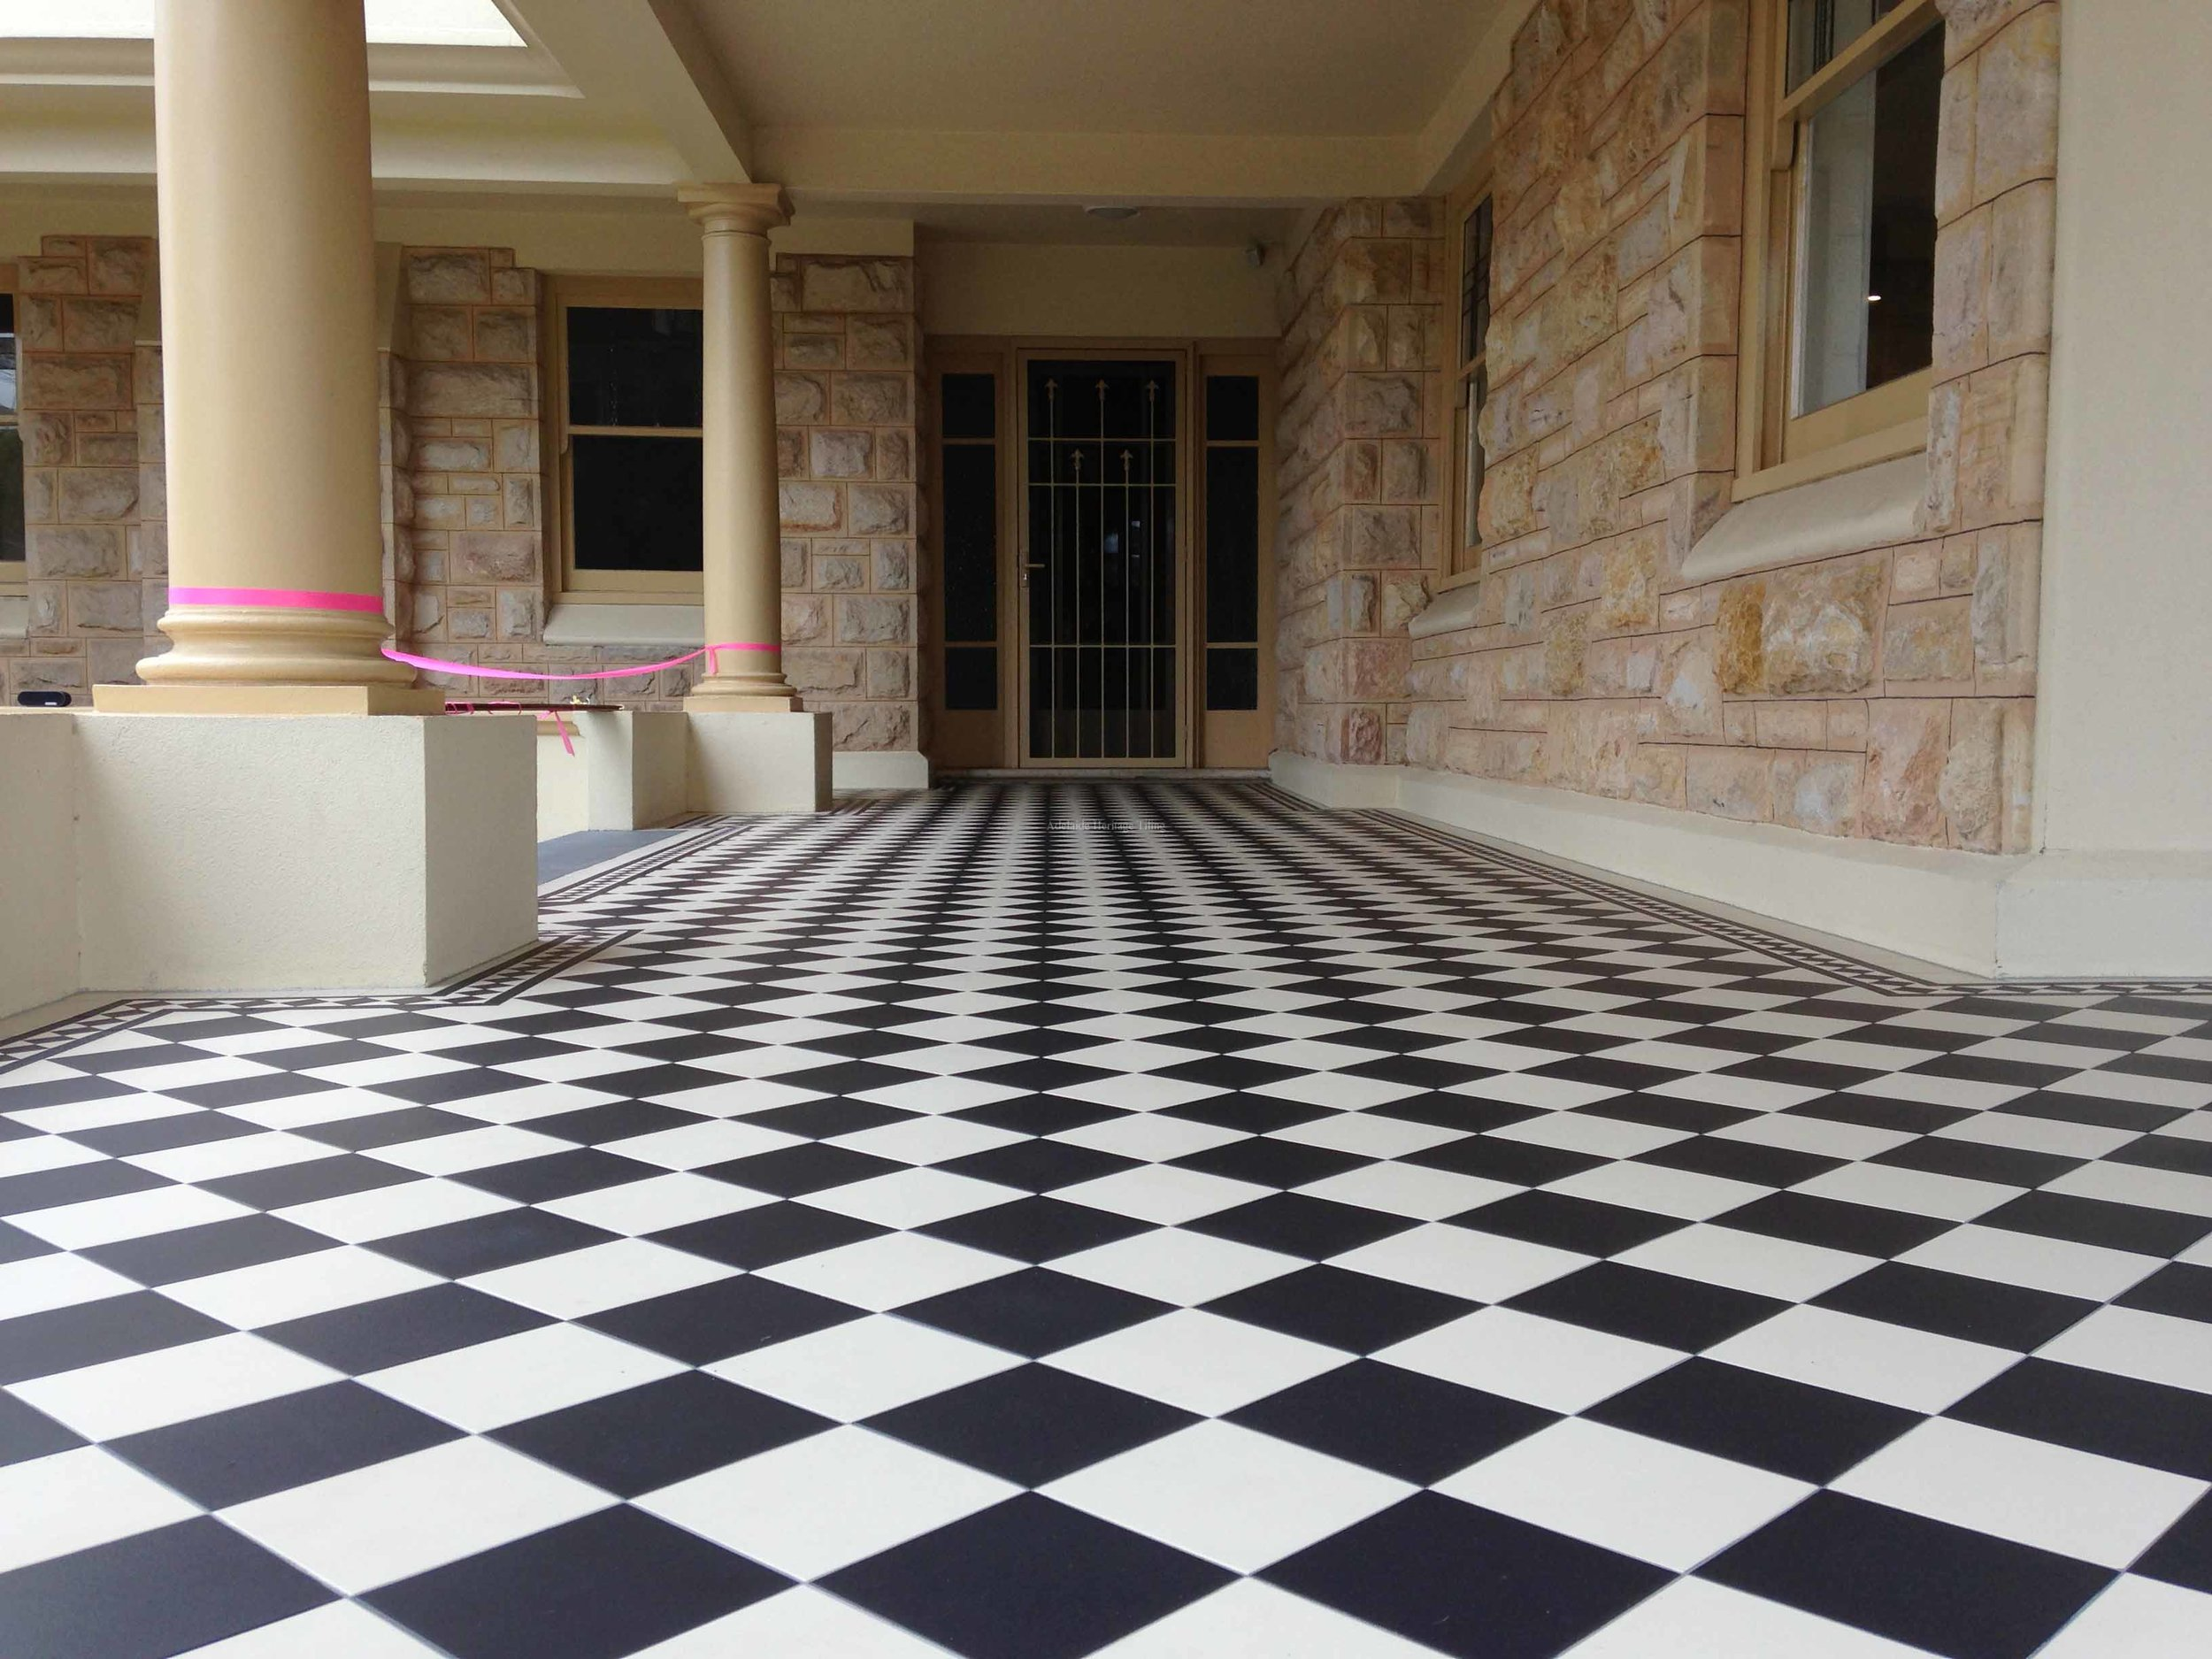 Black and White Alternating 150x150mm Squares with Norwood Border